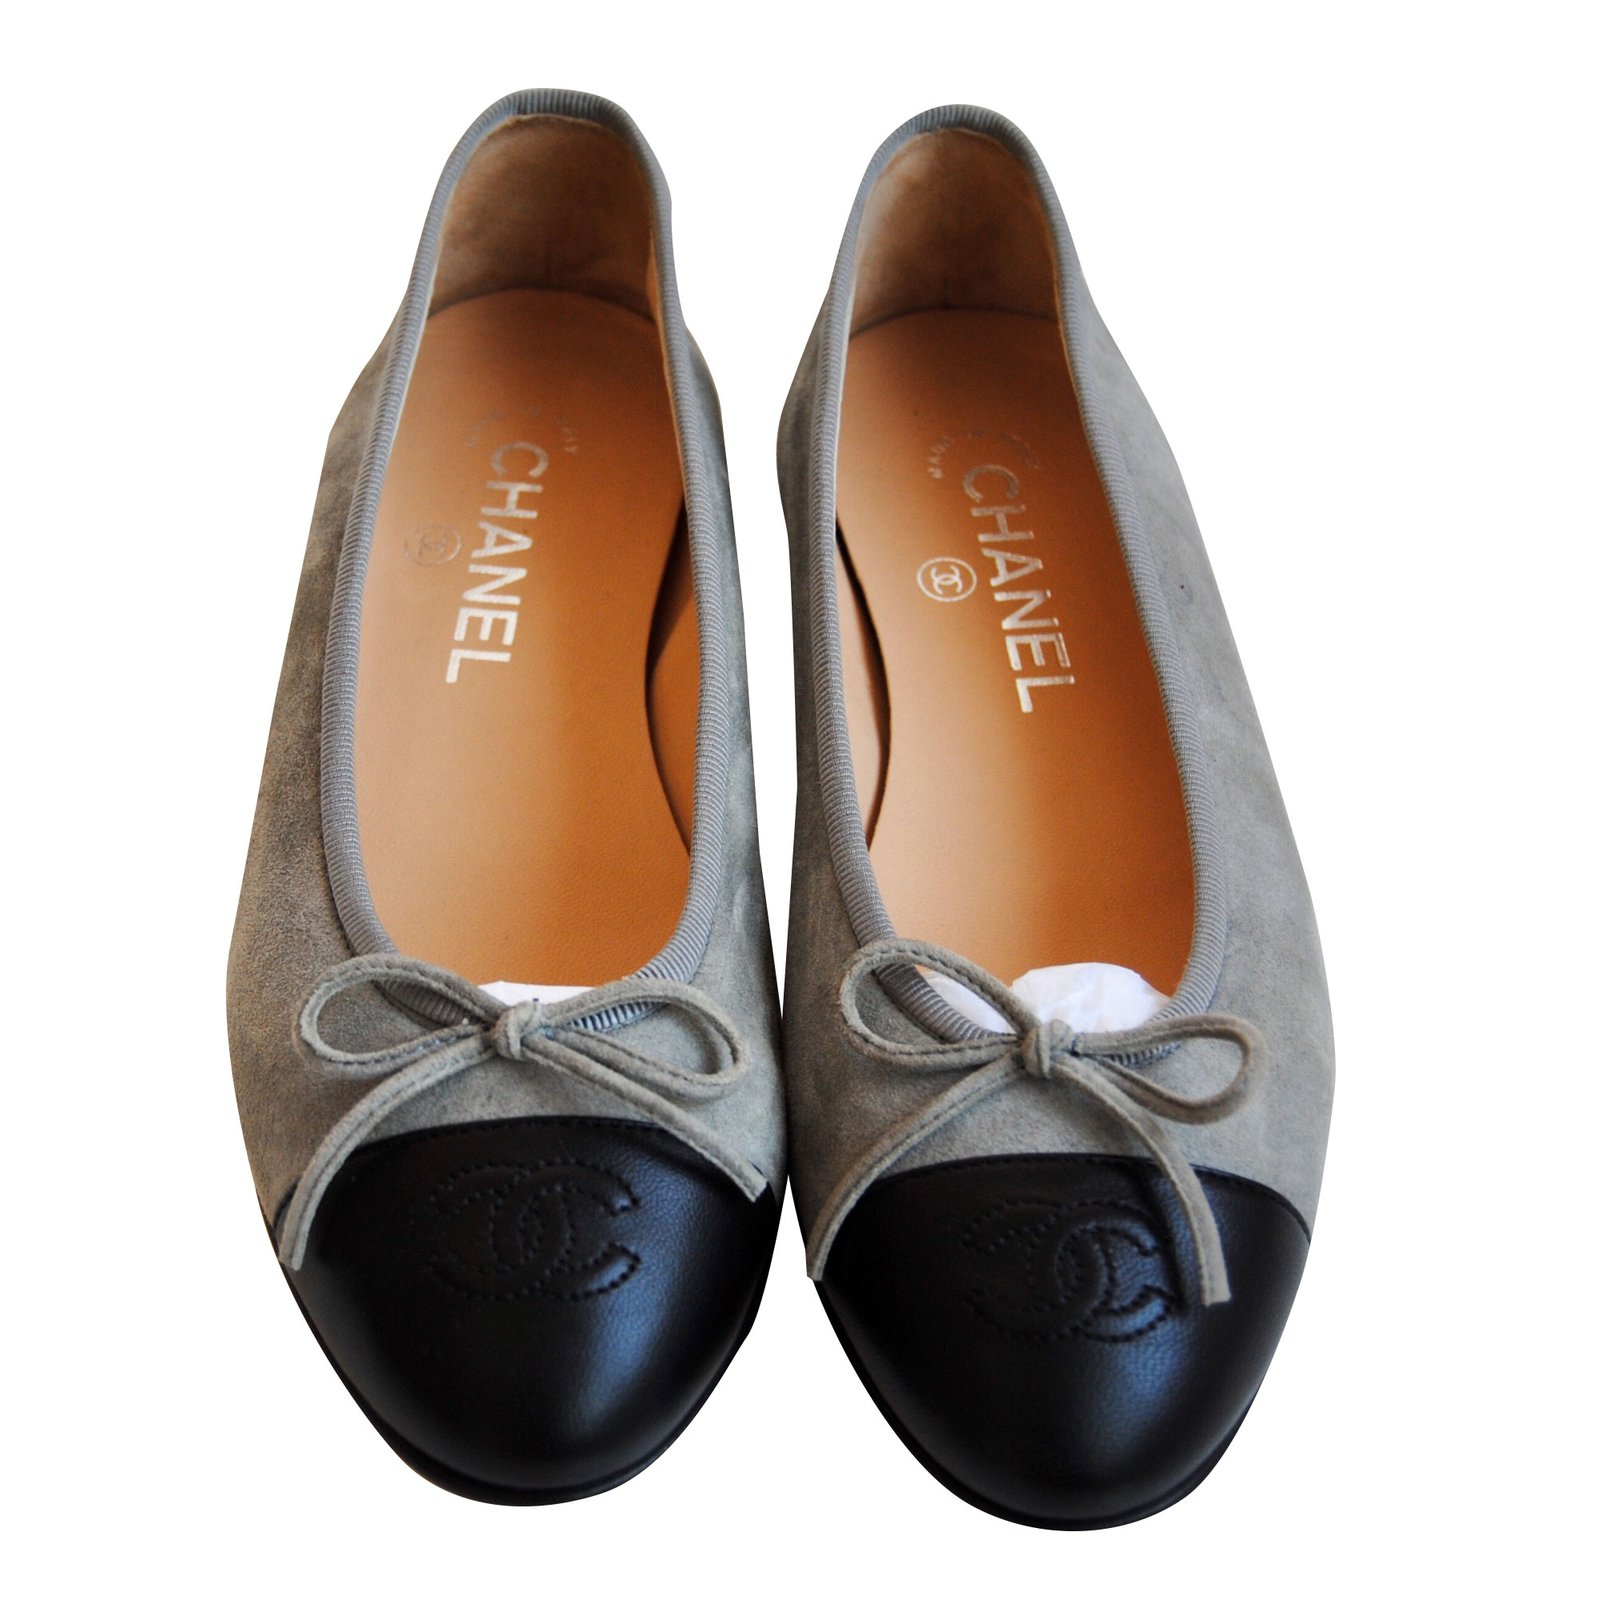 Pre-owned - Ballet flats Chanel 5HU9k4m